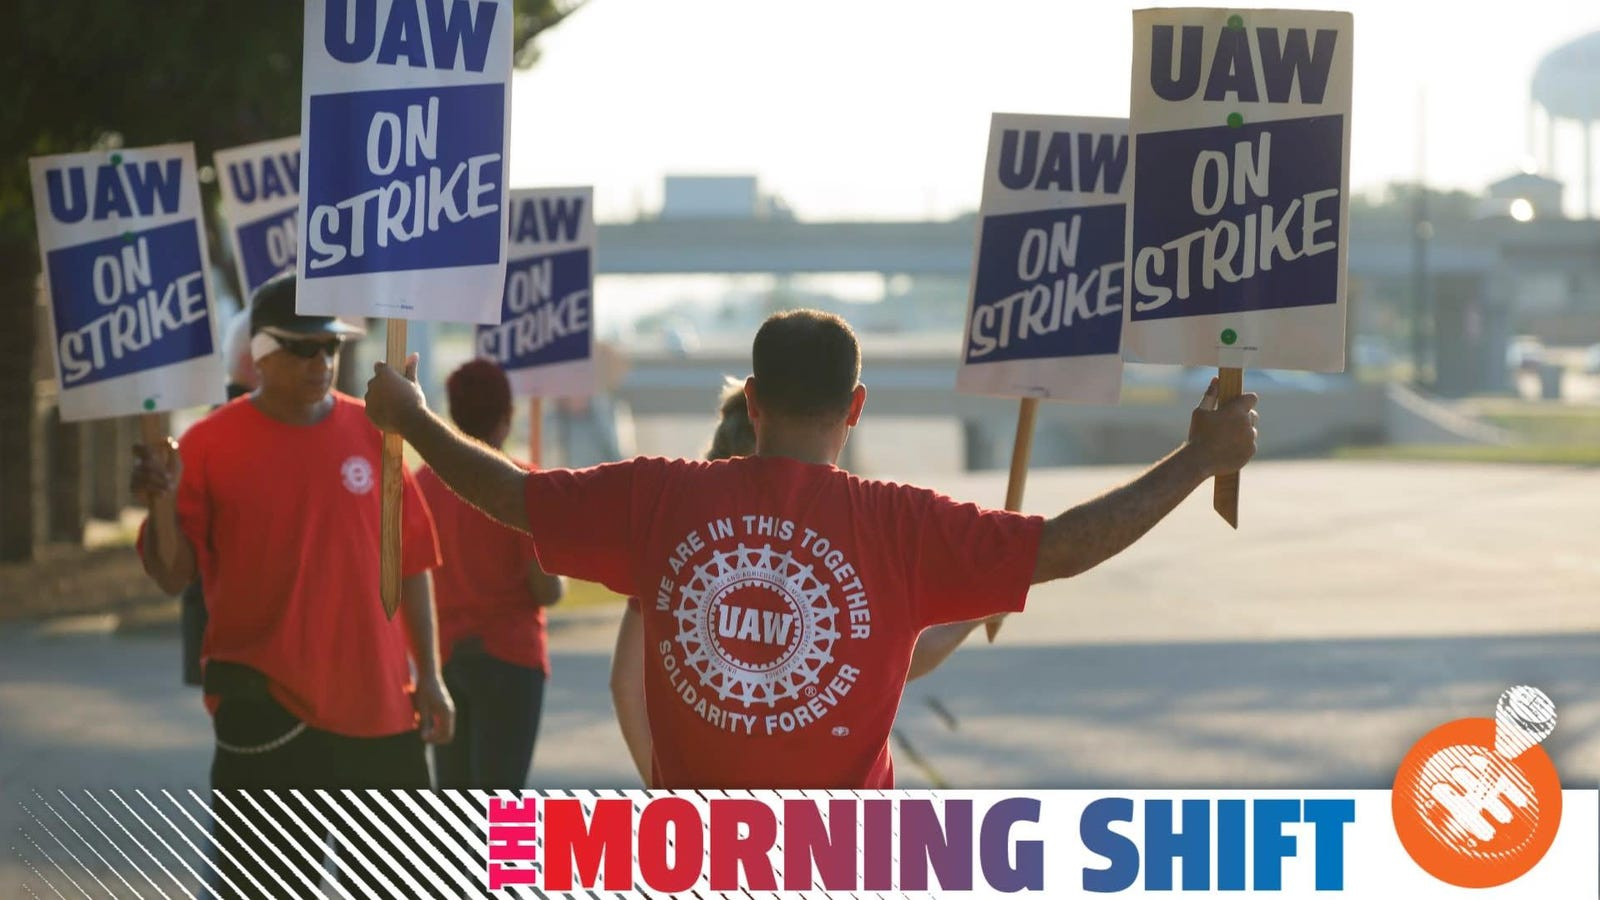 Why Health Care Is Central To The UAW Vs. GM Strike Battle